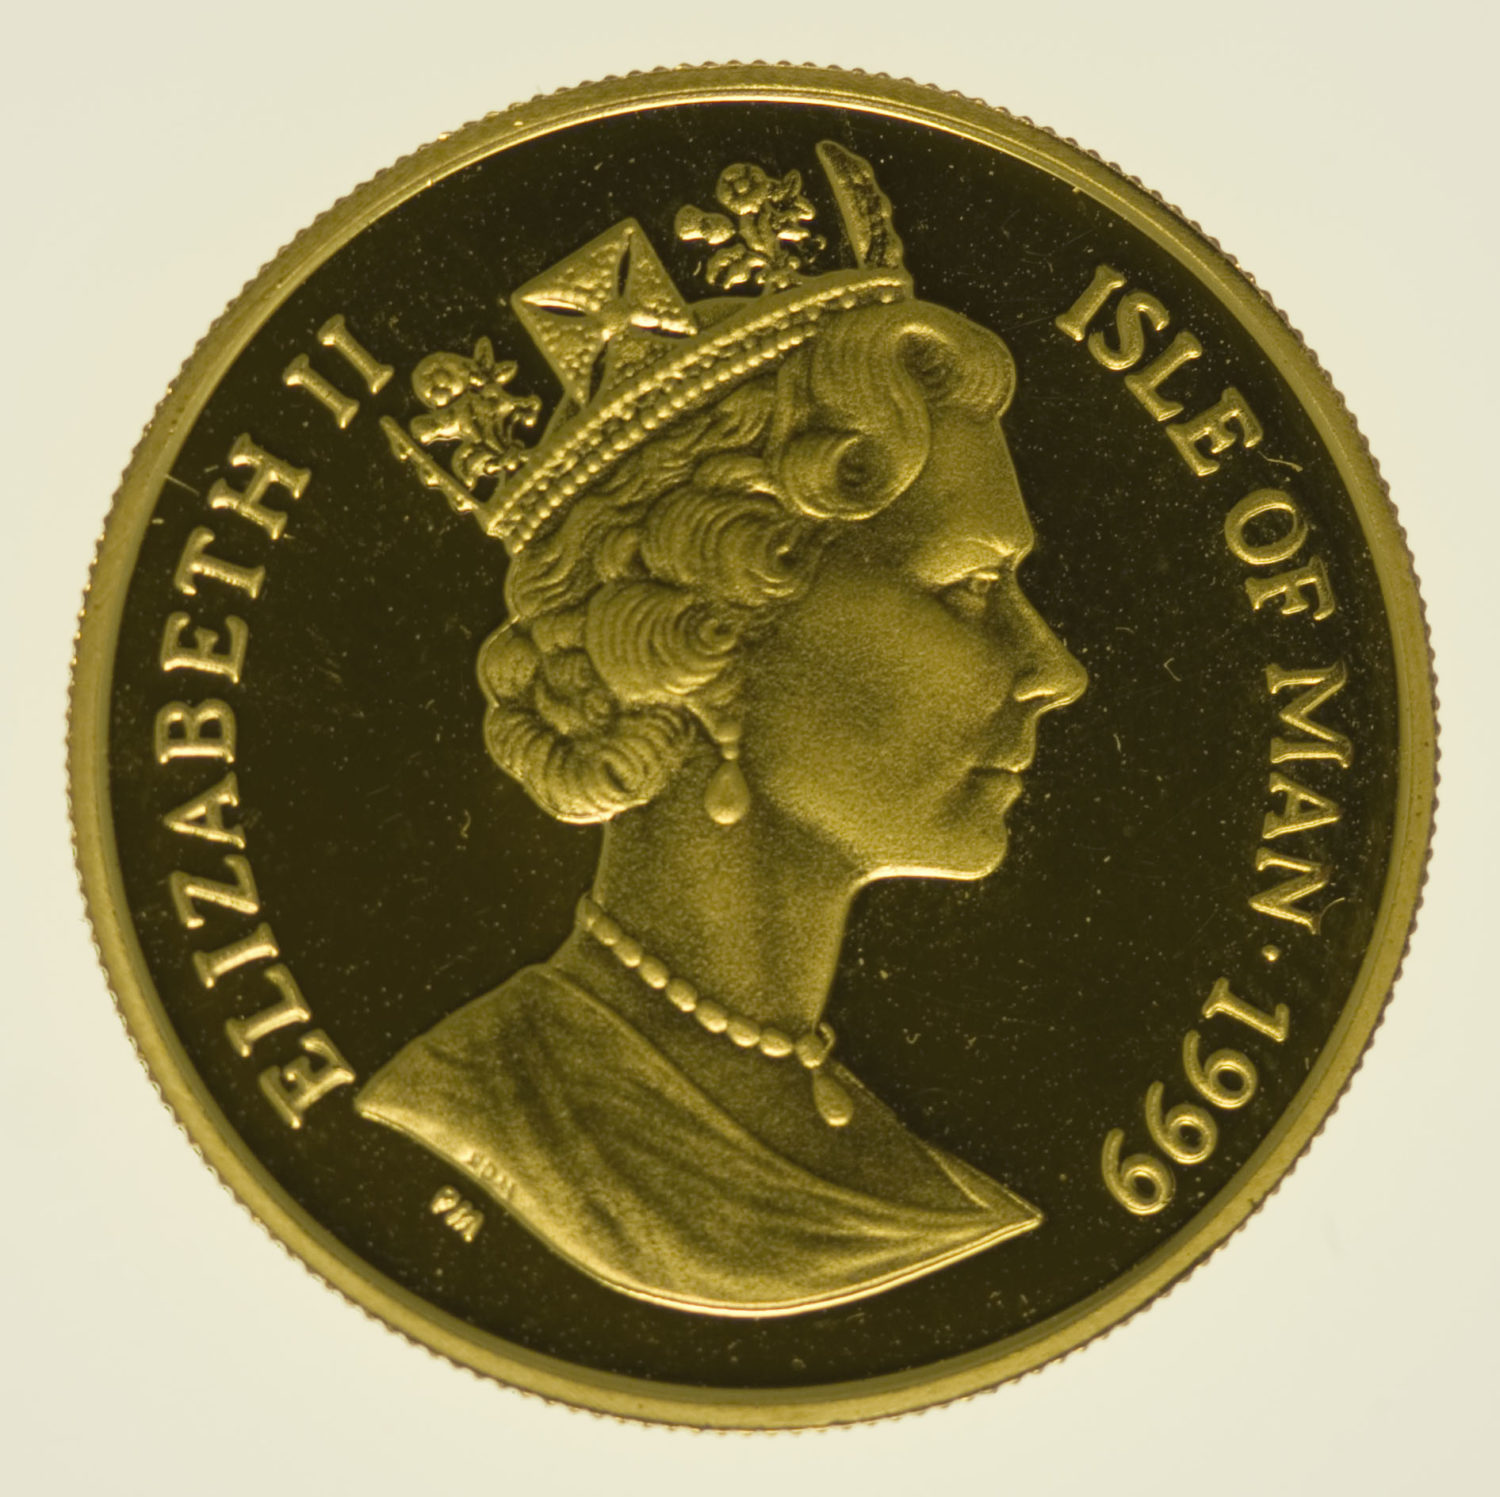 isle-of-man - Isle of Man Elisabeth II. 1/4 OZ 1999 Angel